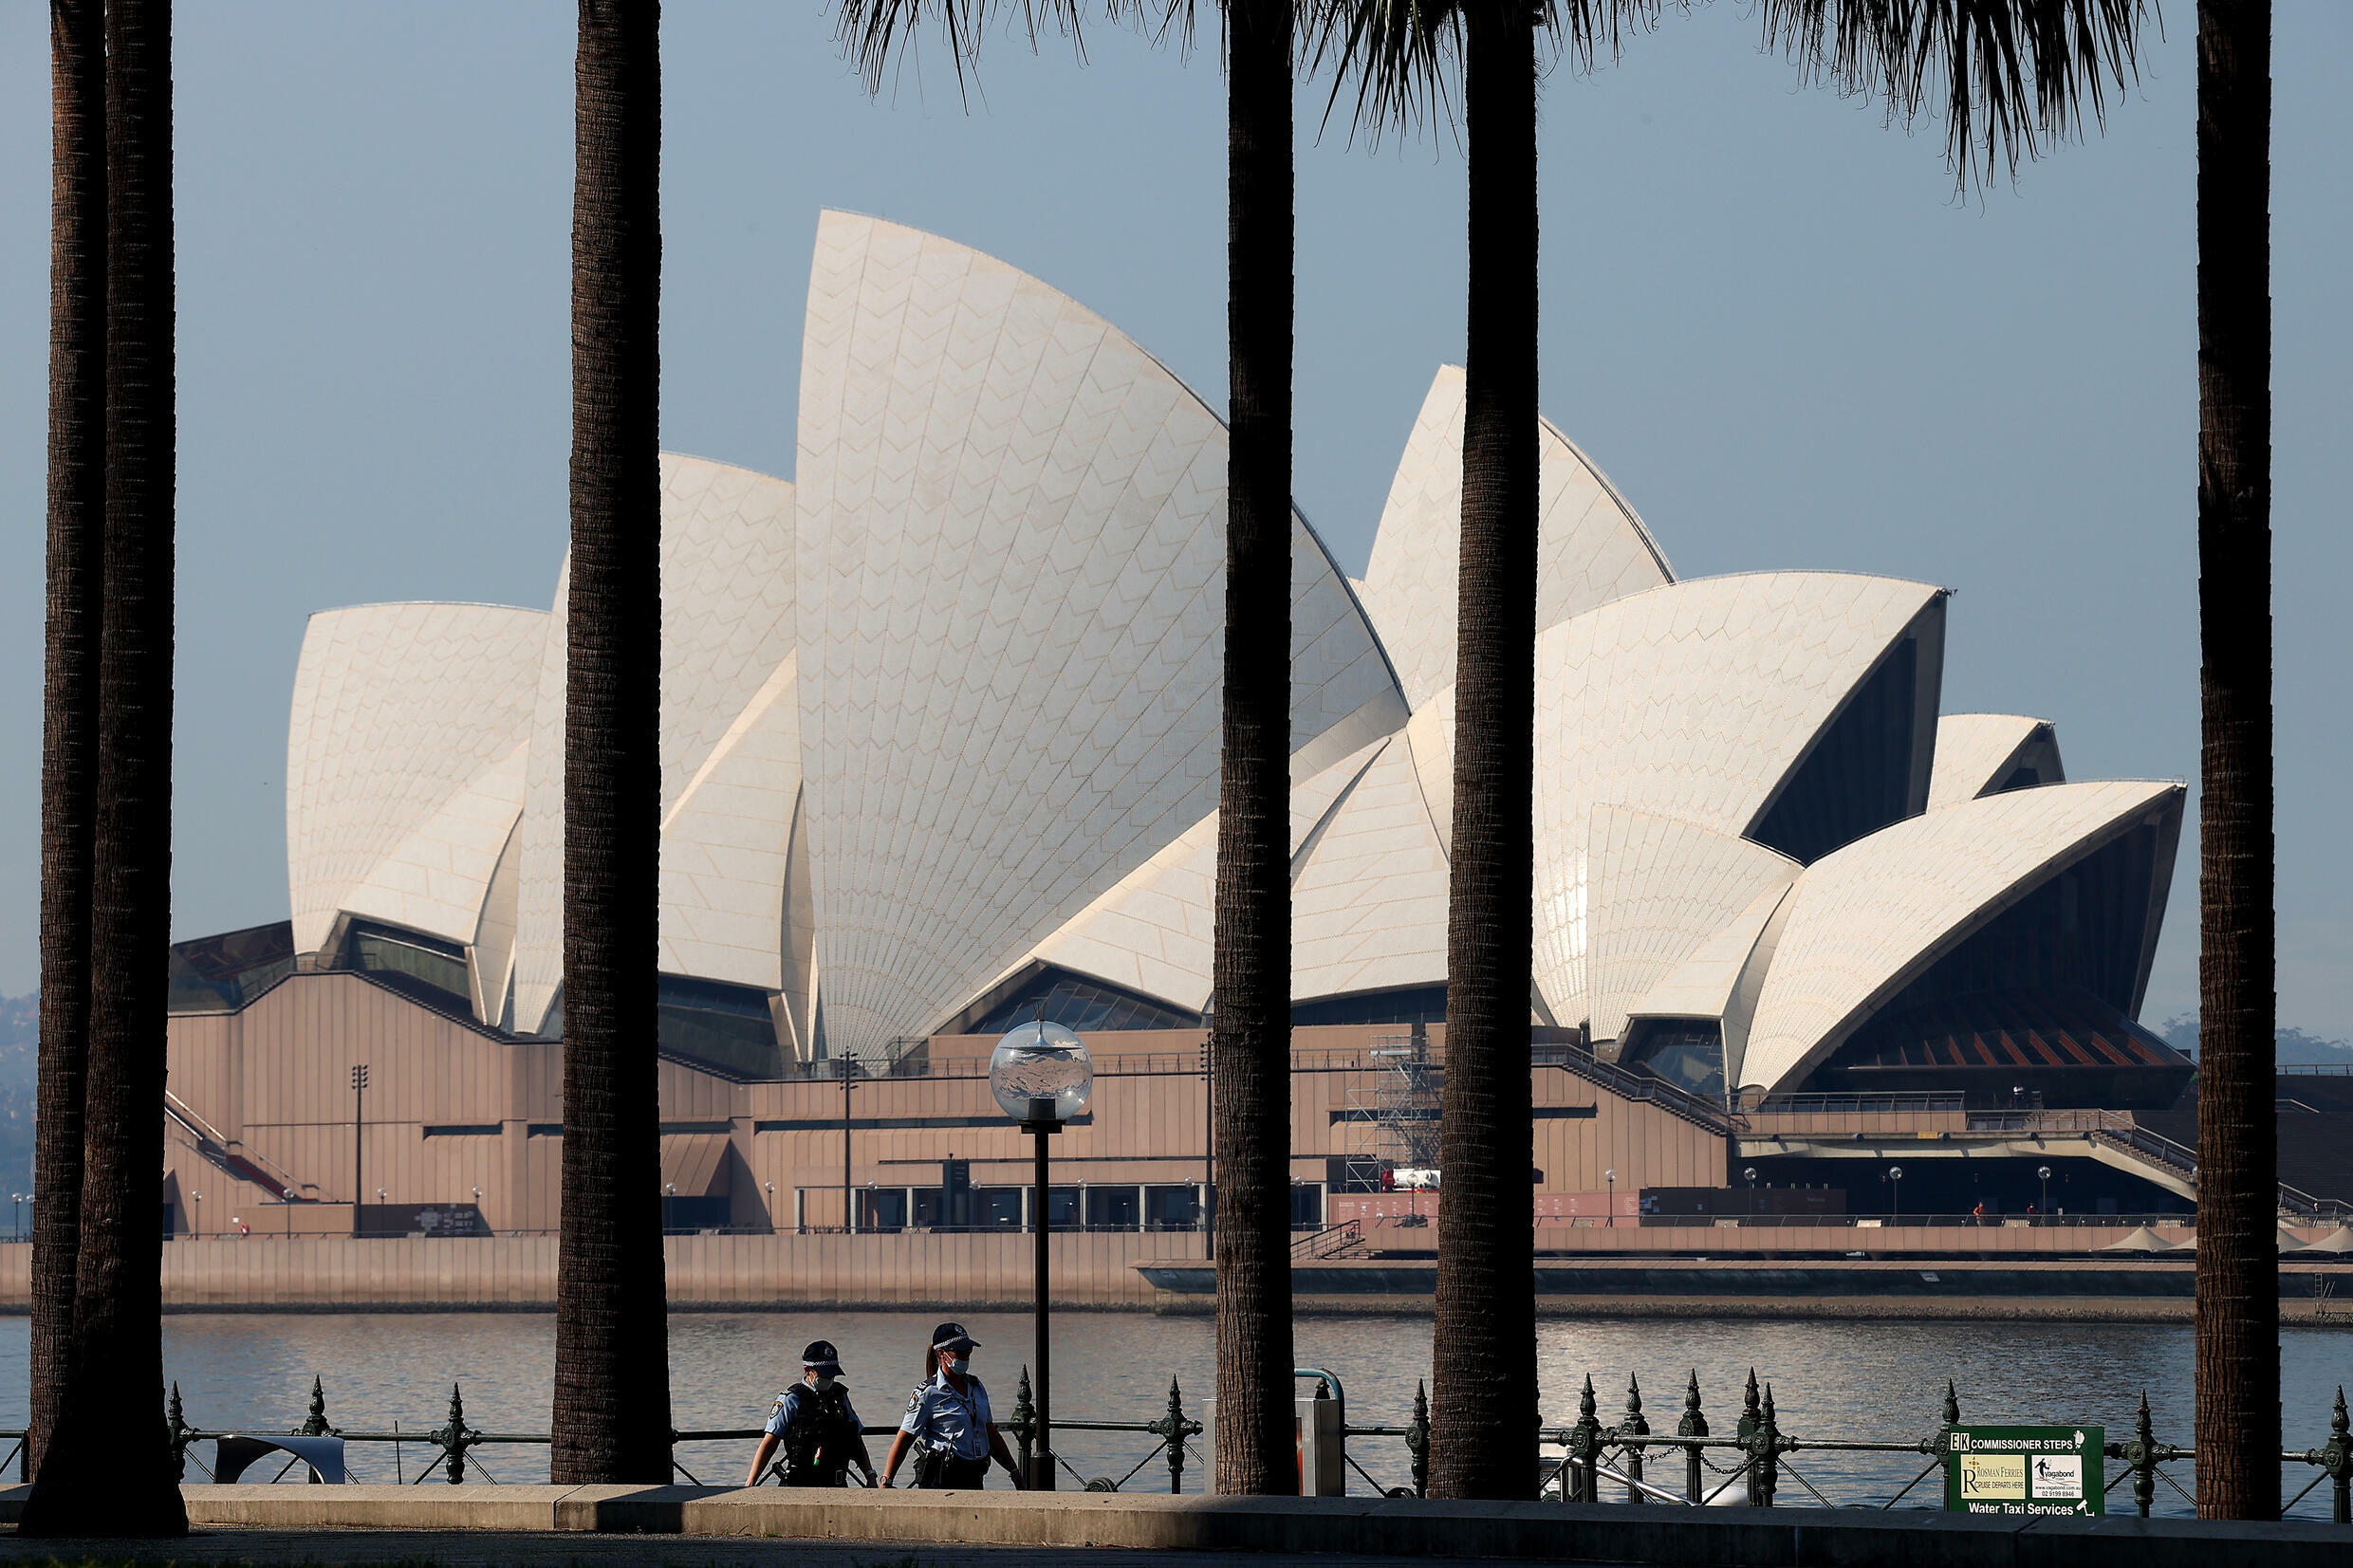 Police officers patrol in front of the Sydney Opera House as the city extends its two-month-old Covid lockdown